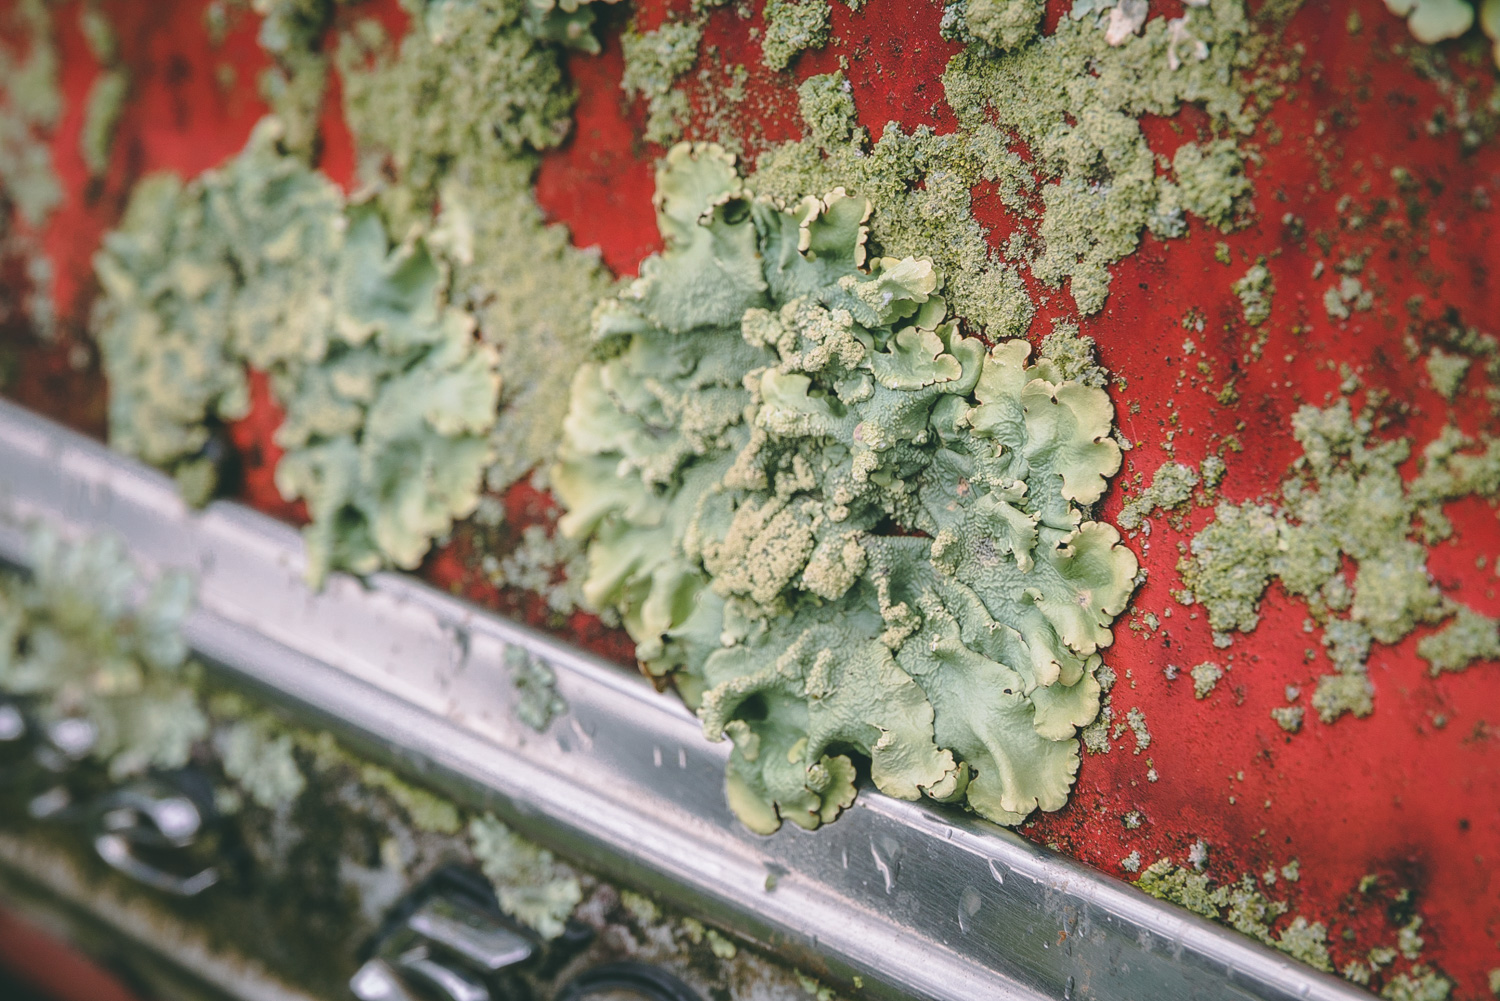 Barn Find Hunter moss lichen growth on car